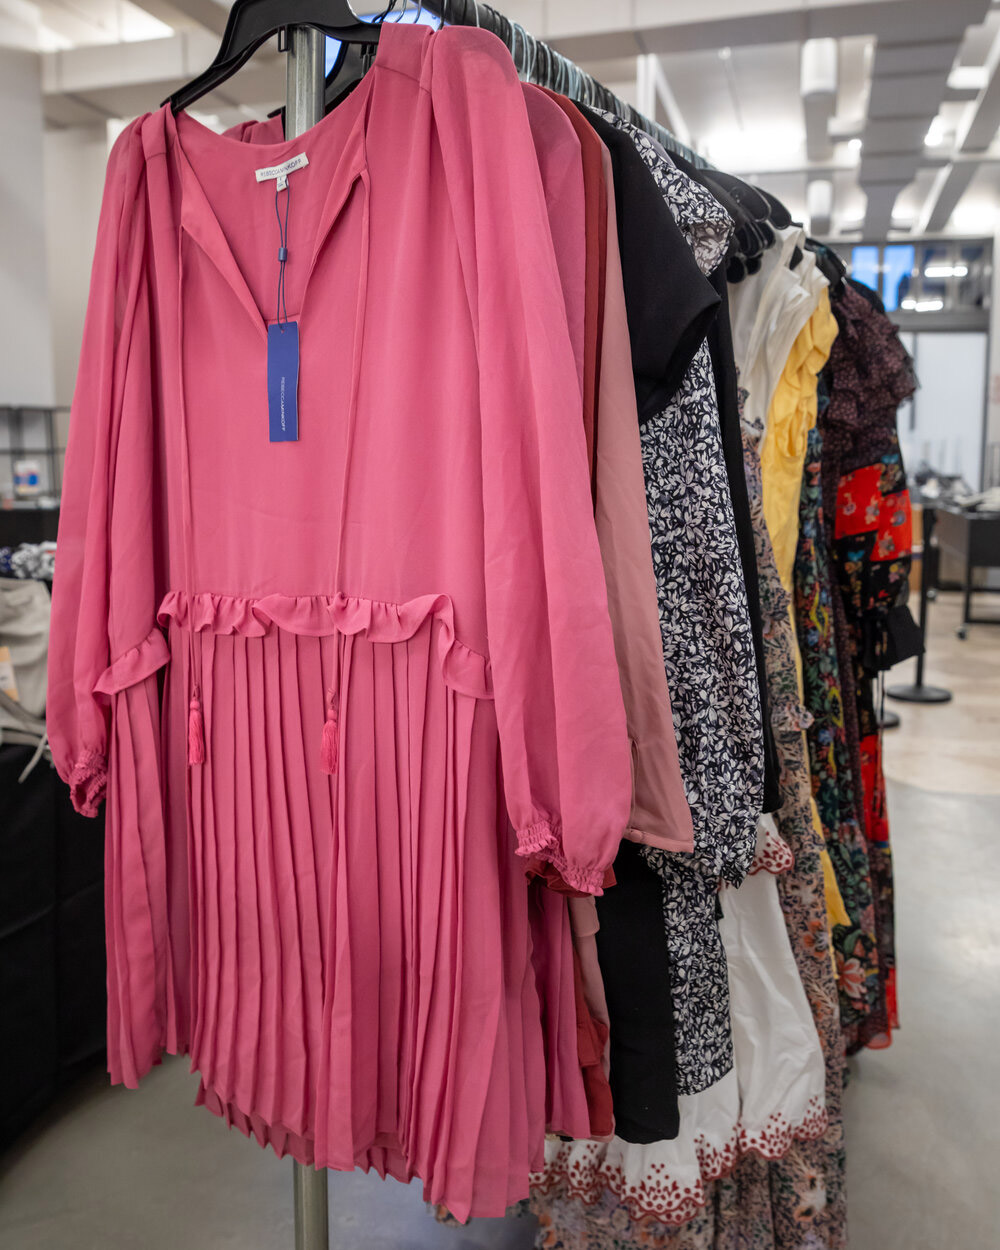 Rebecca Minkoff Sample Sale in Images